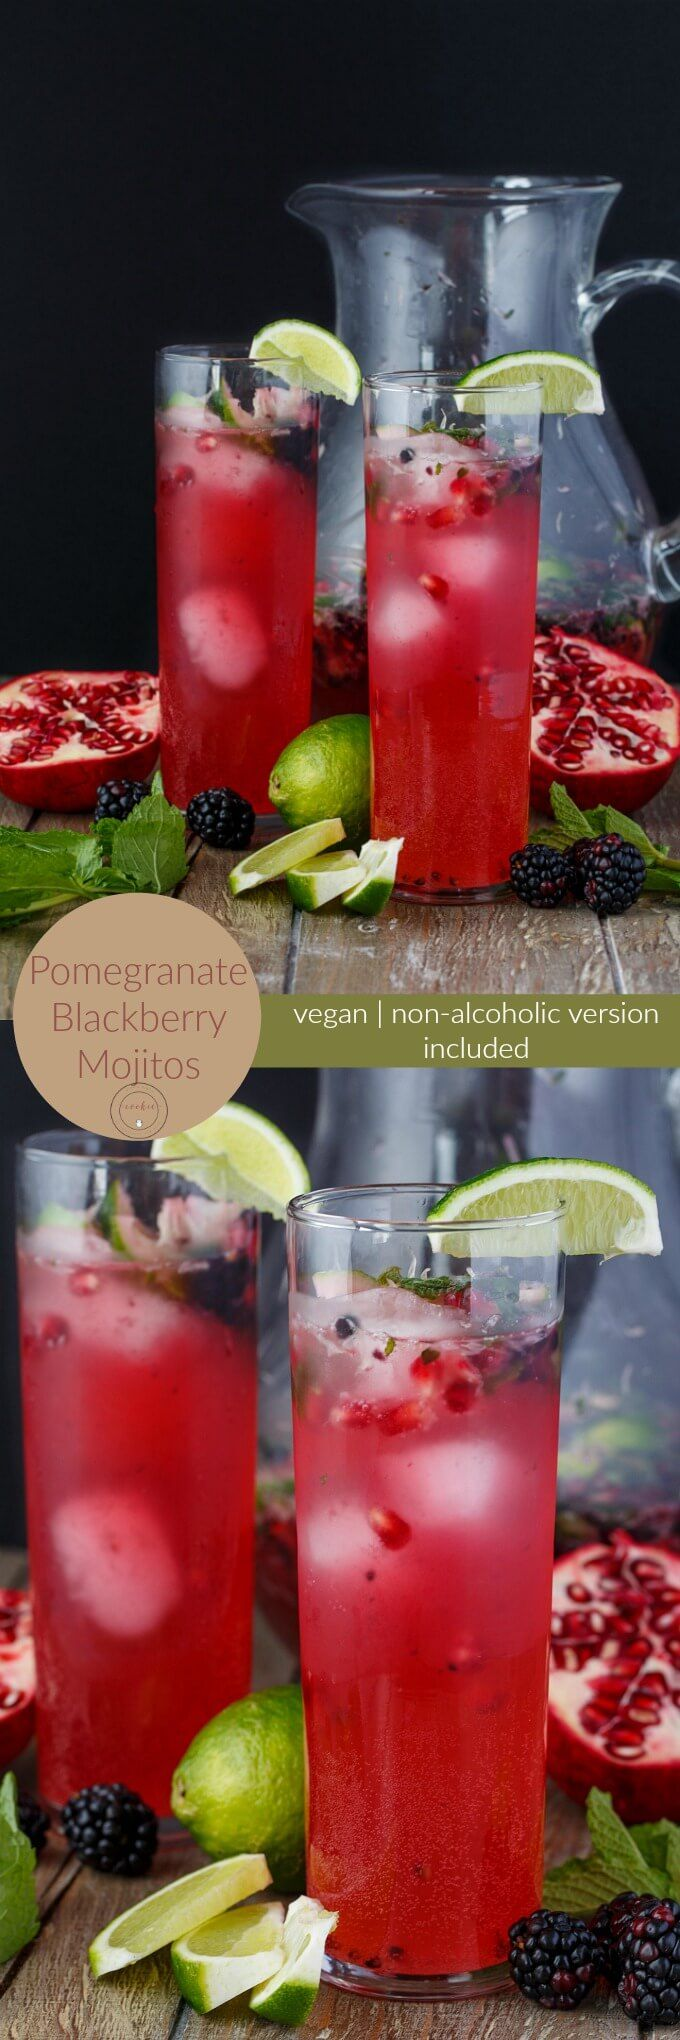 Mojitos are not only for the summer months! These pomegranate blackberry mojitos scream festivity for the Christmas season!